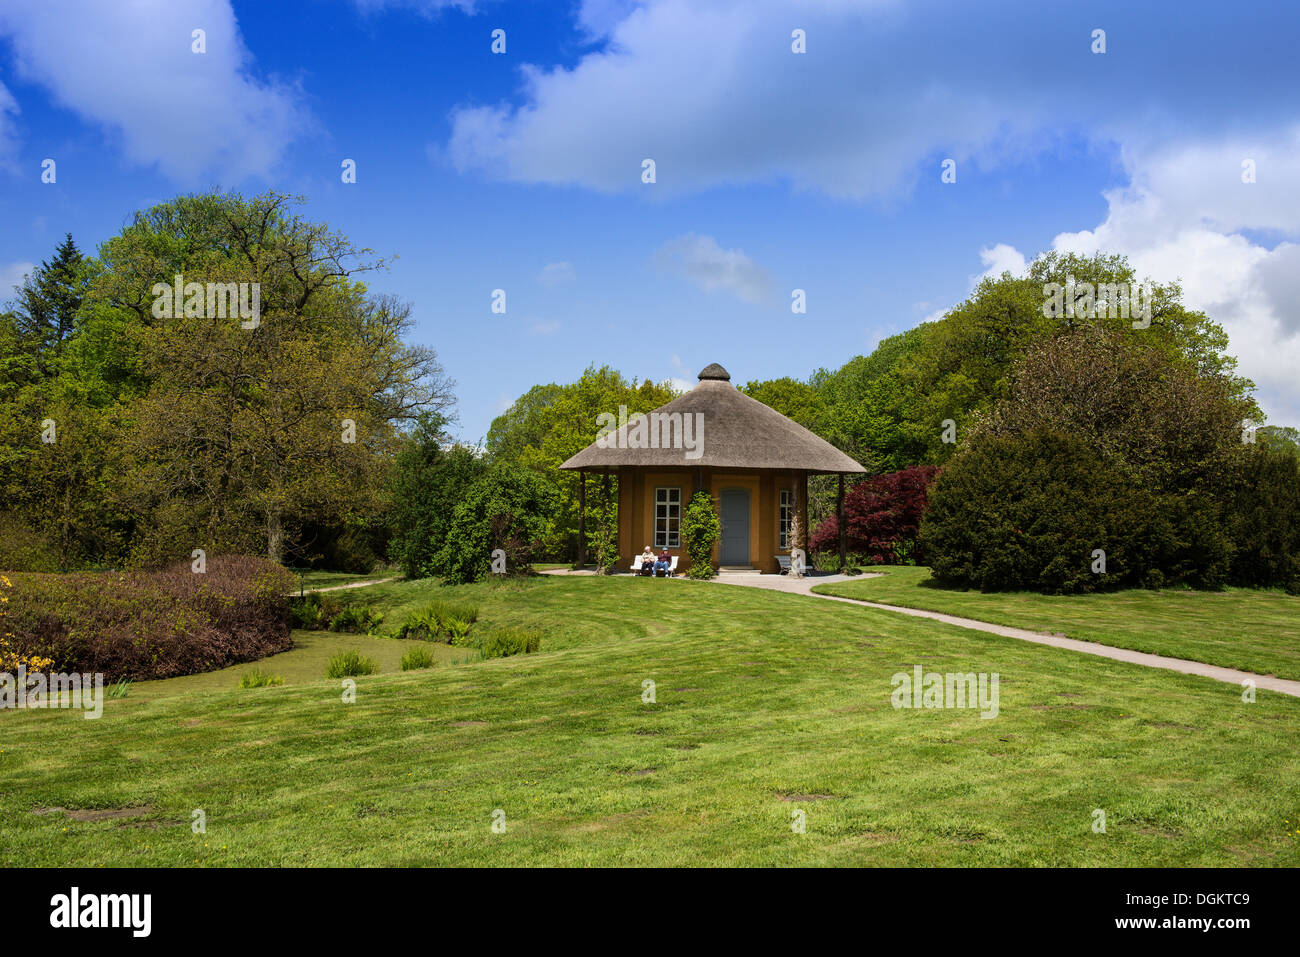 Temple of Friendship in Luetetsburg Castle Gardens, the largest English landscaped gardens of East Frisia, Lower - Stock Image